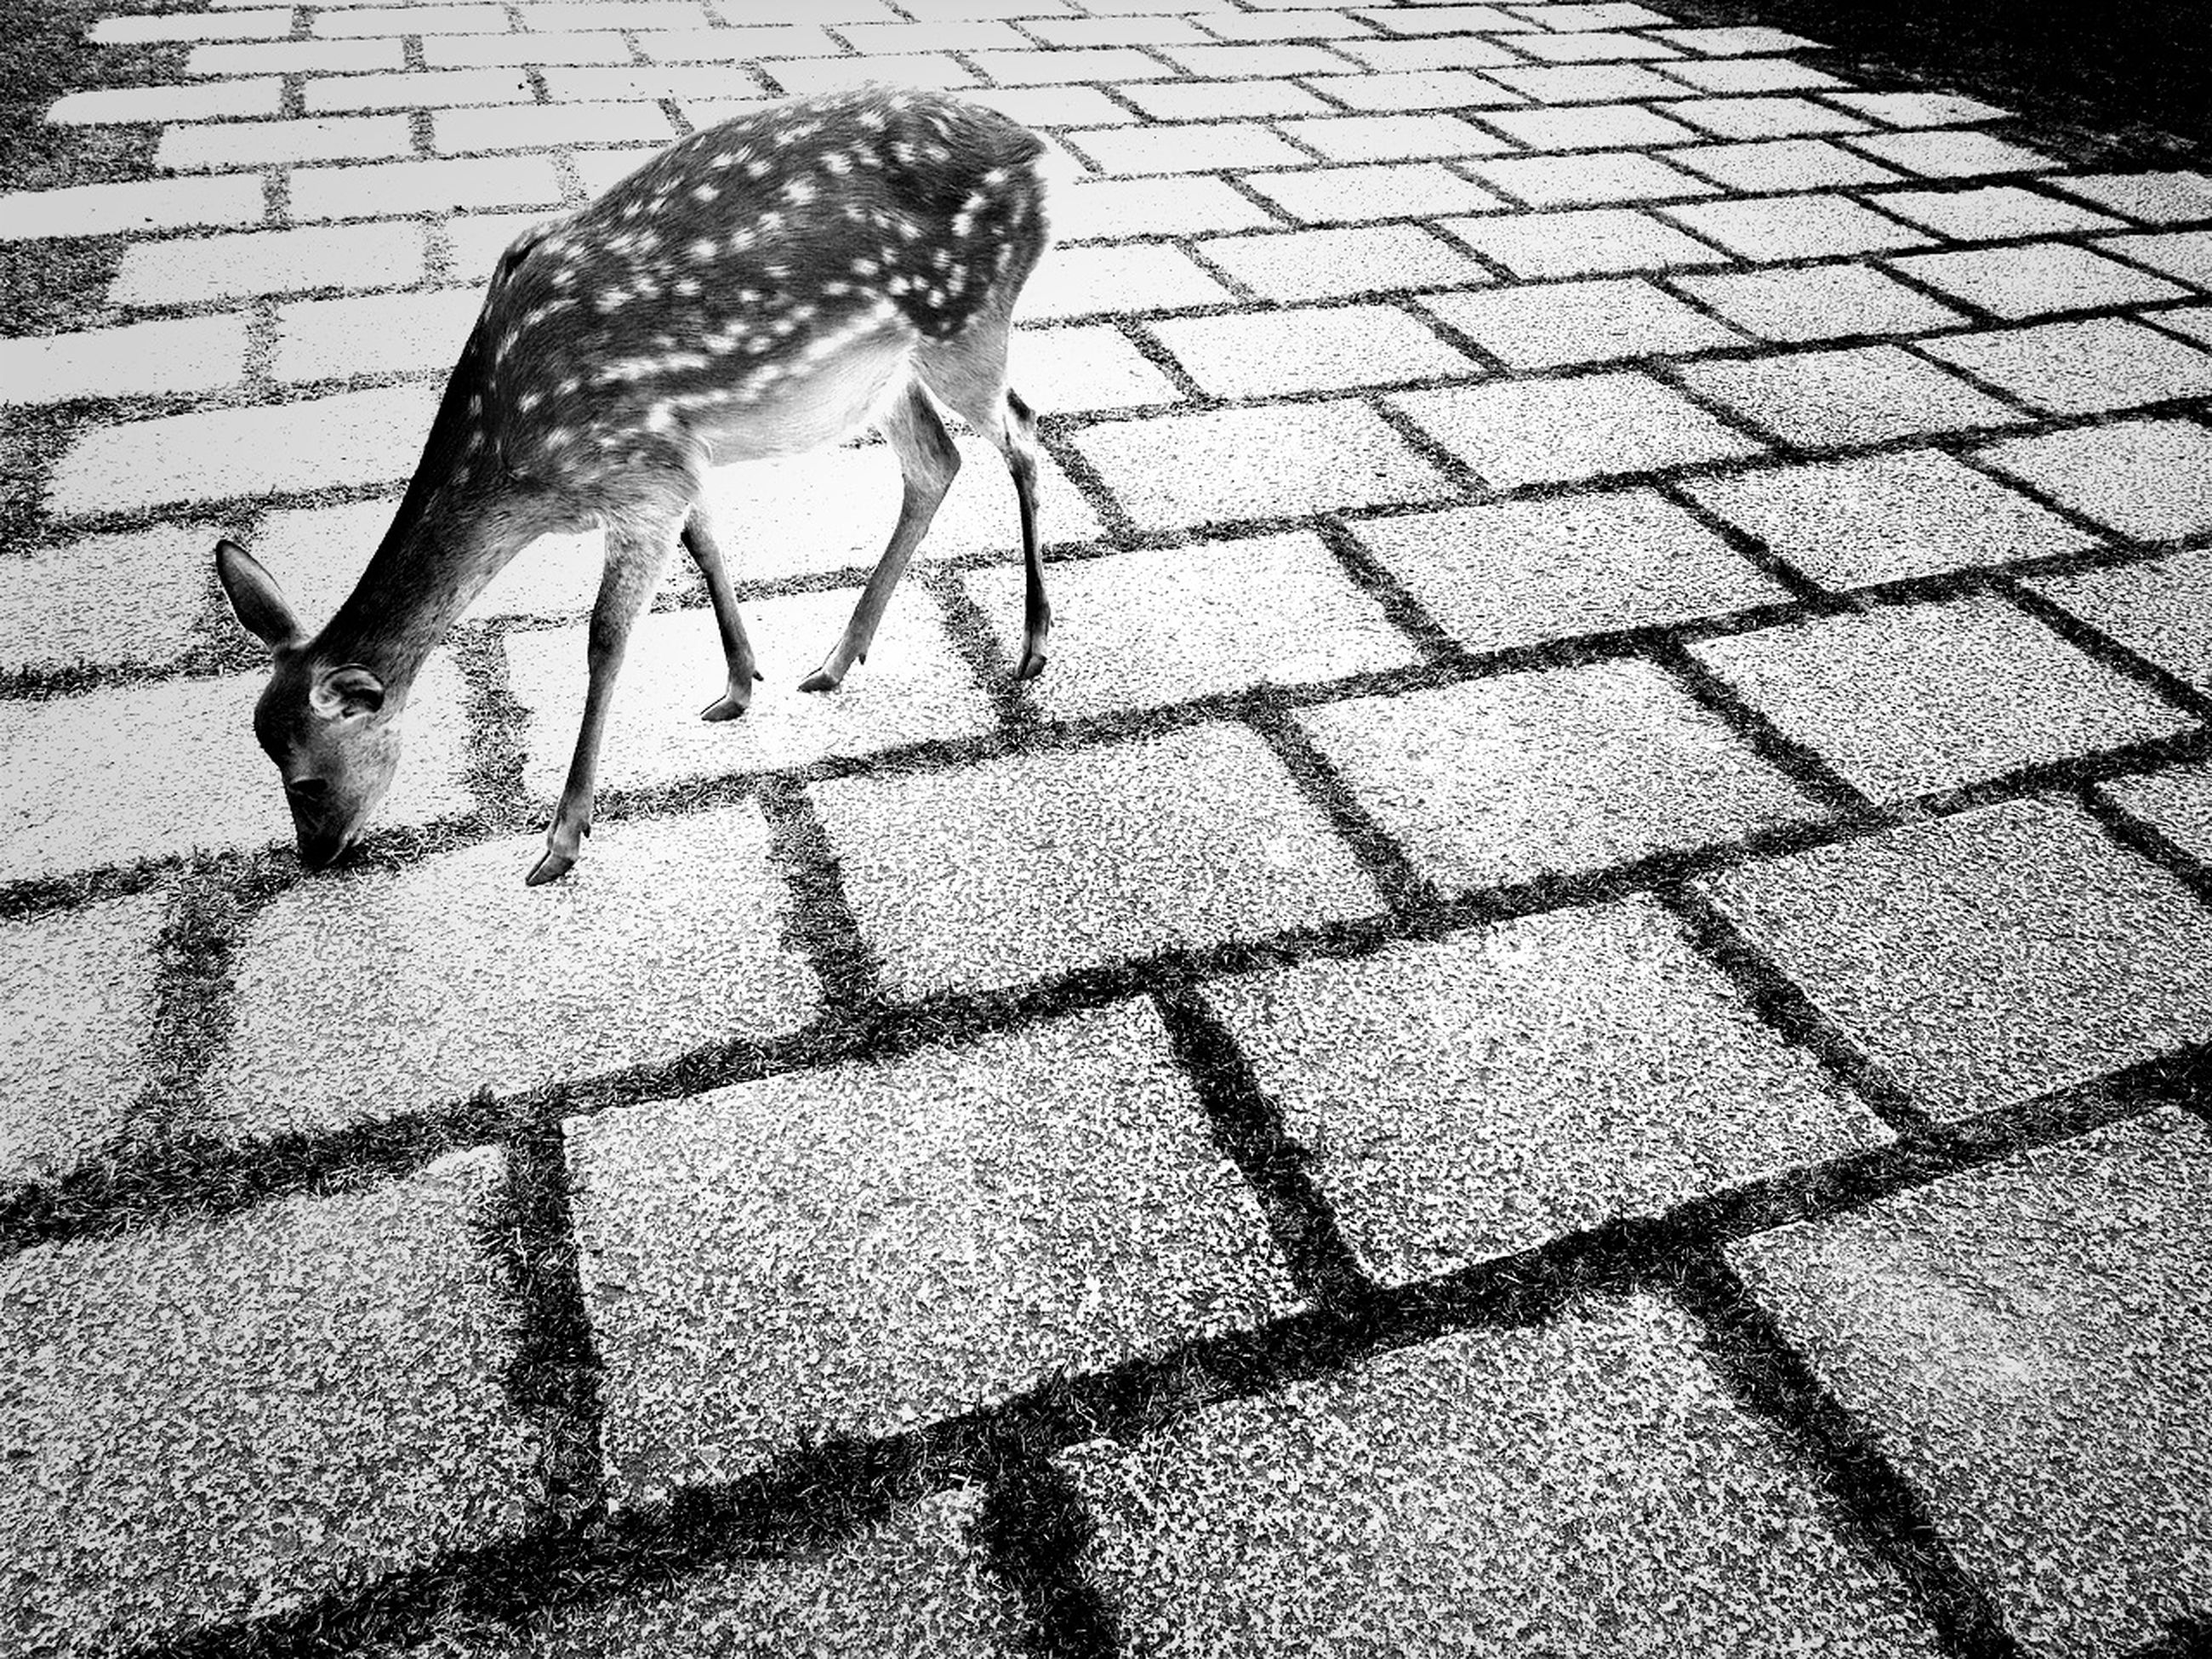 animal themes, animals in the wild, wildlife, bird, one animal, street, pigeon, high angle view, cobblestone, shadow, sunlight, full length, two animals, outdoors, three animals, zoology, day, sidewalk, walking, road